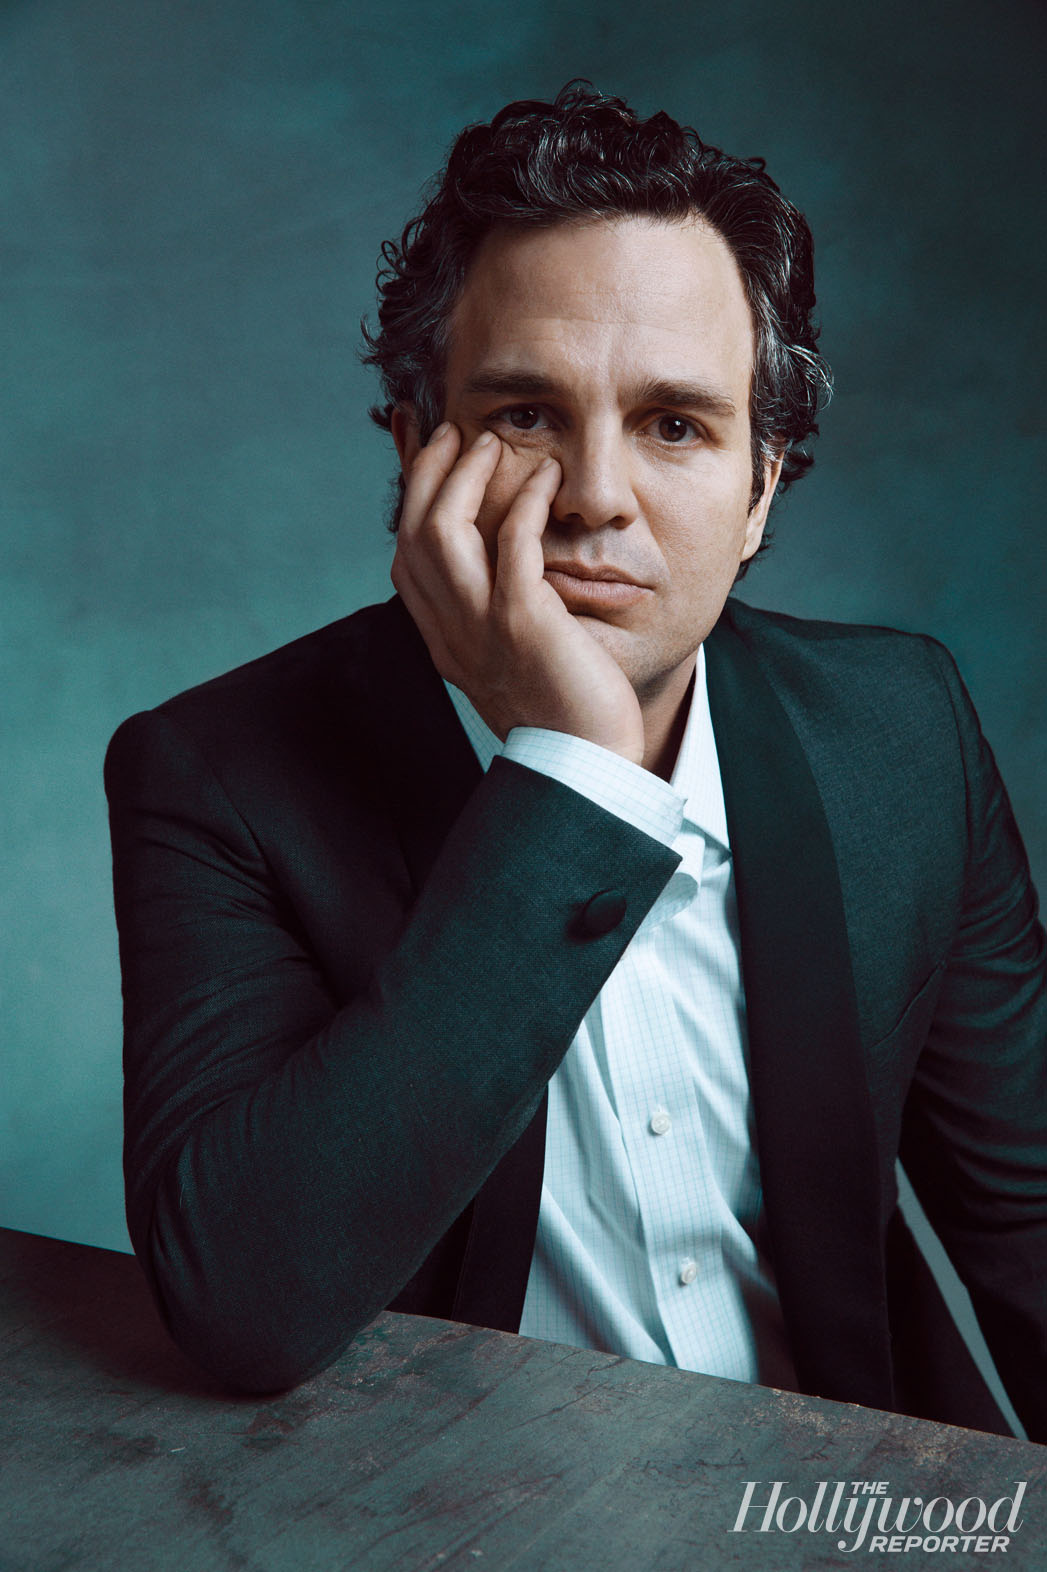 Mark Ruffalo on 'Heart's' Relevant Theme